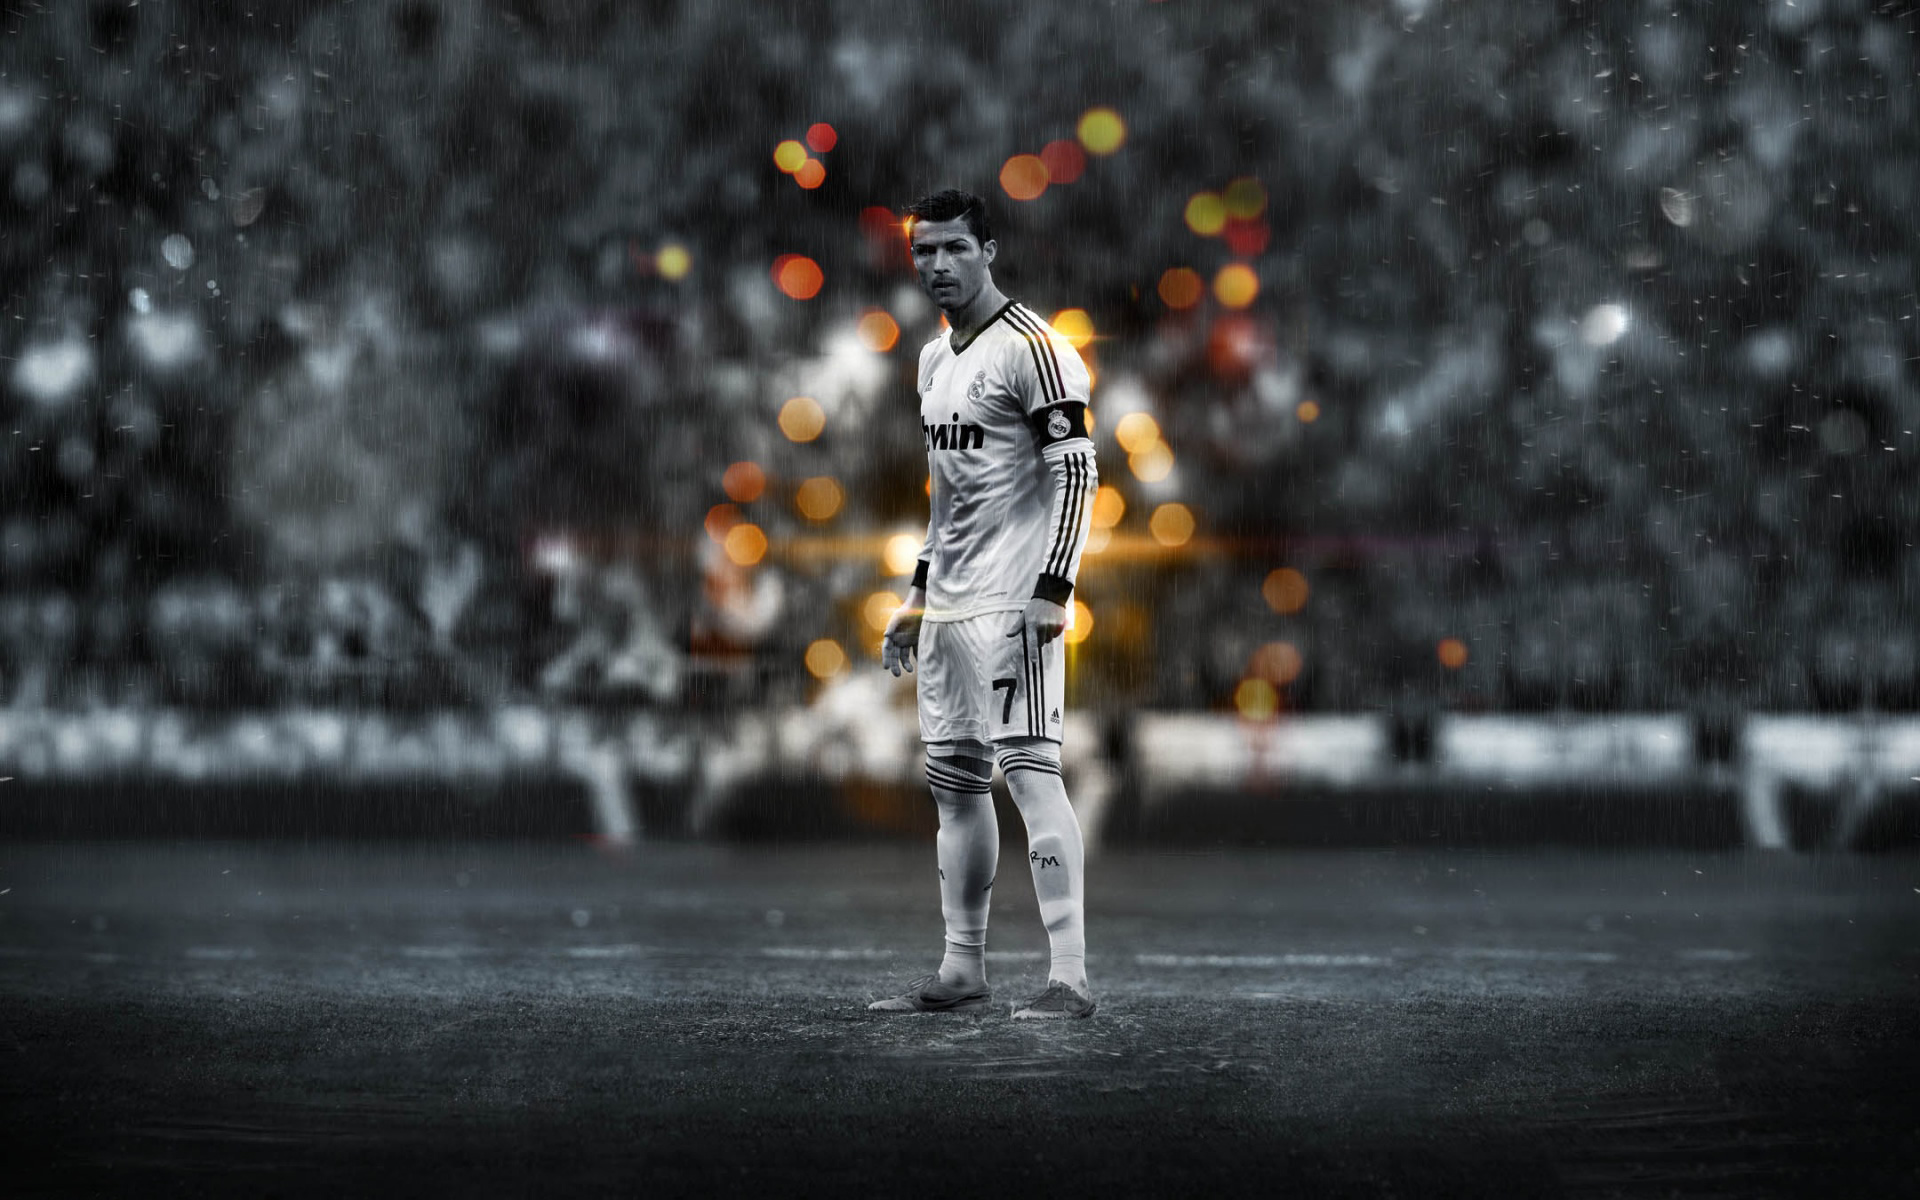 Cristiano Ronaldo preparing to strike wallpaper